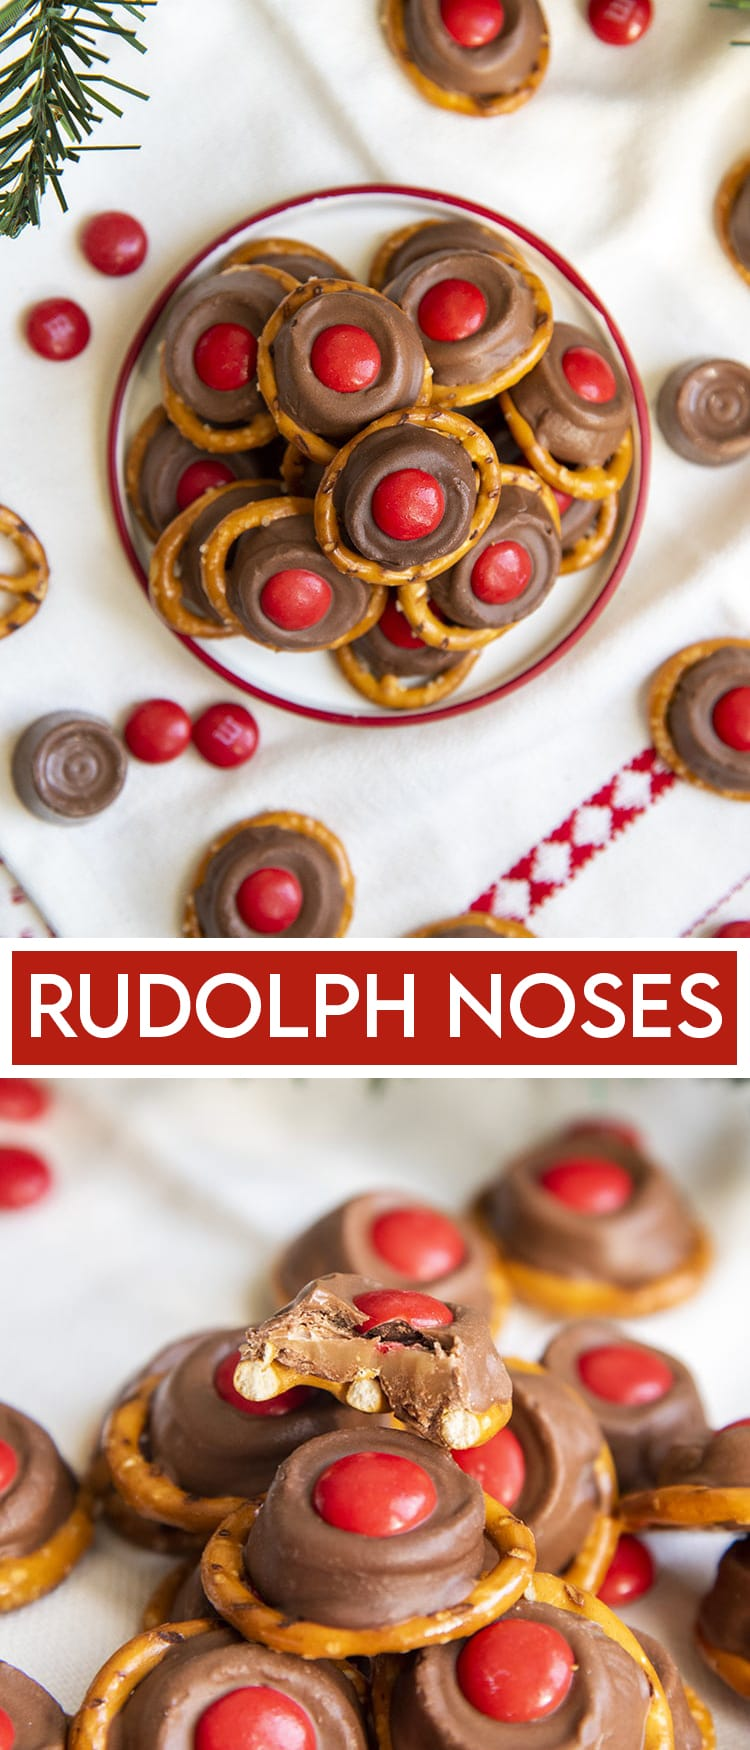 """A small plate full of """"rudolph noses"""" treats. Which are round pretzels topped with a slightly melted rolo, and a red m&m on top with a text overlay for pinterest. Followed by a close up of one of the rudolph noses bit in half to show the caramel in the middle."""